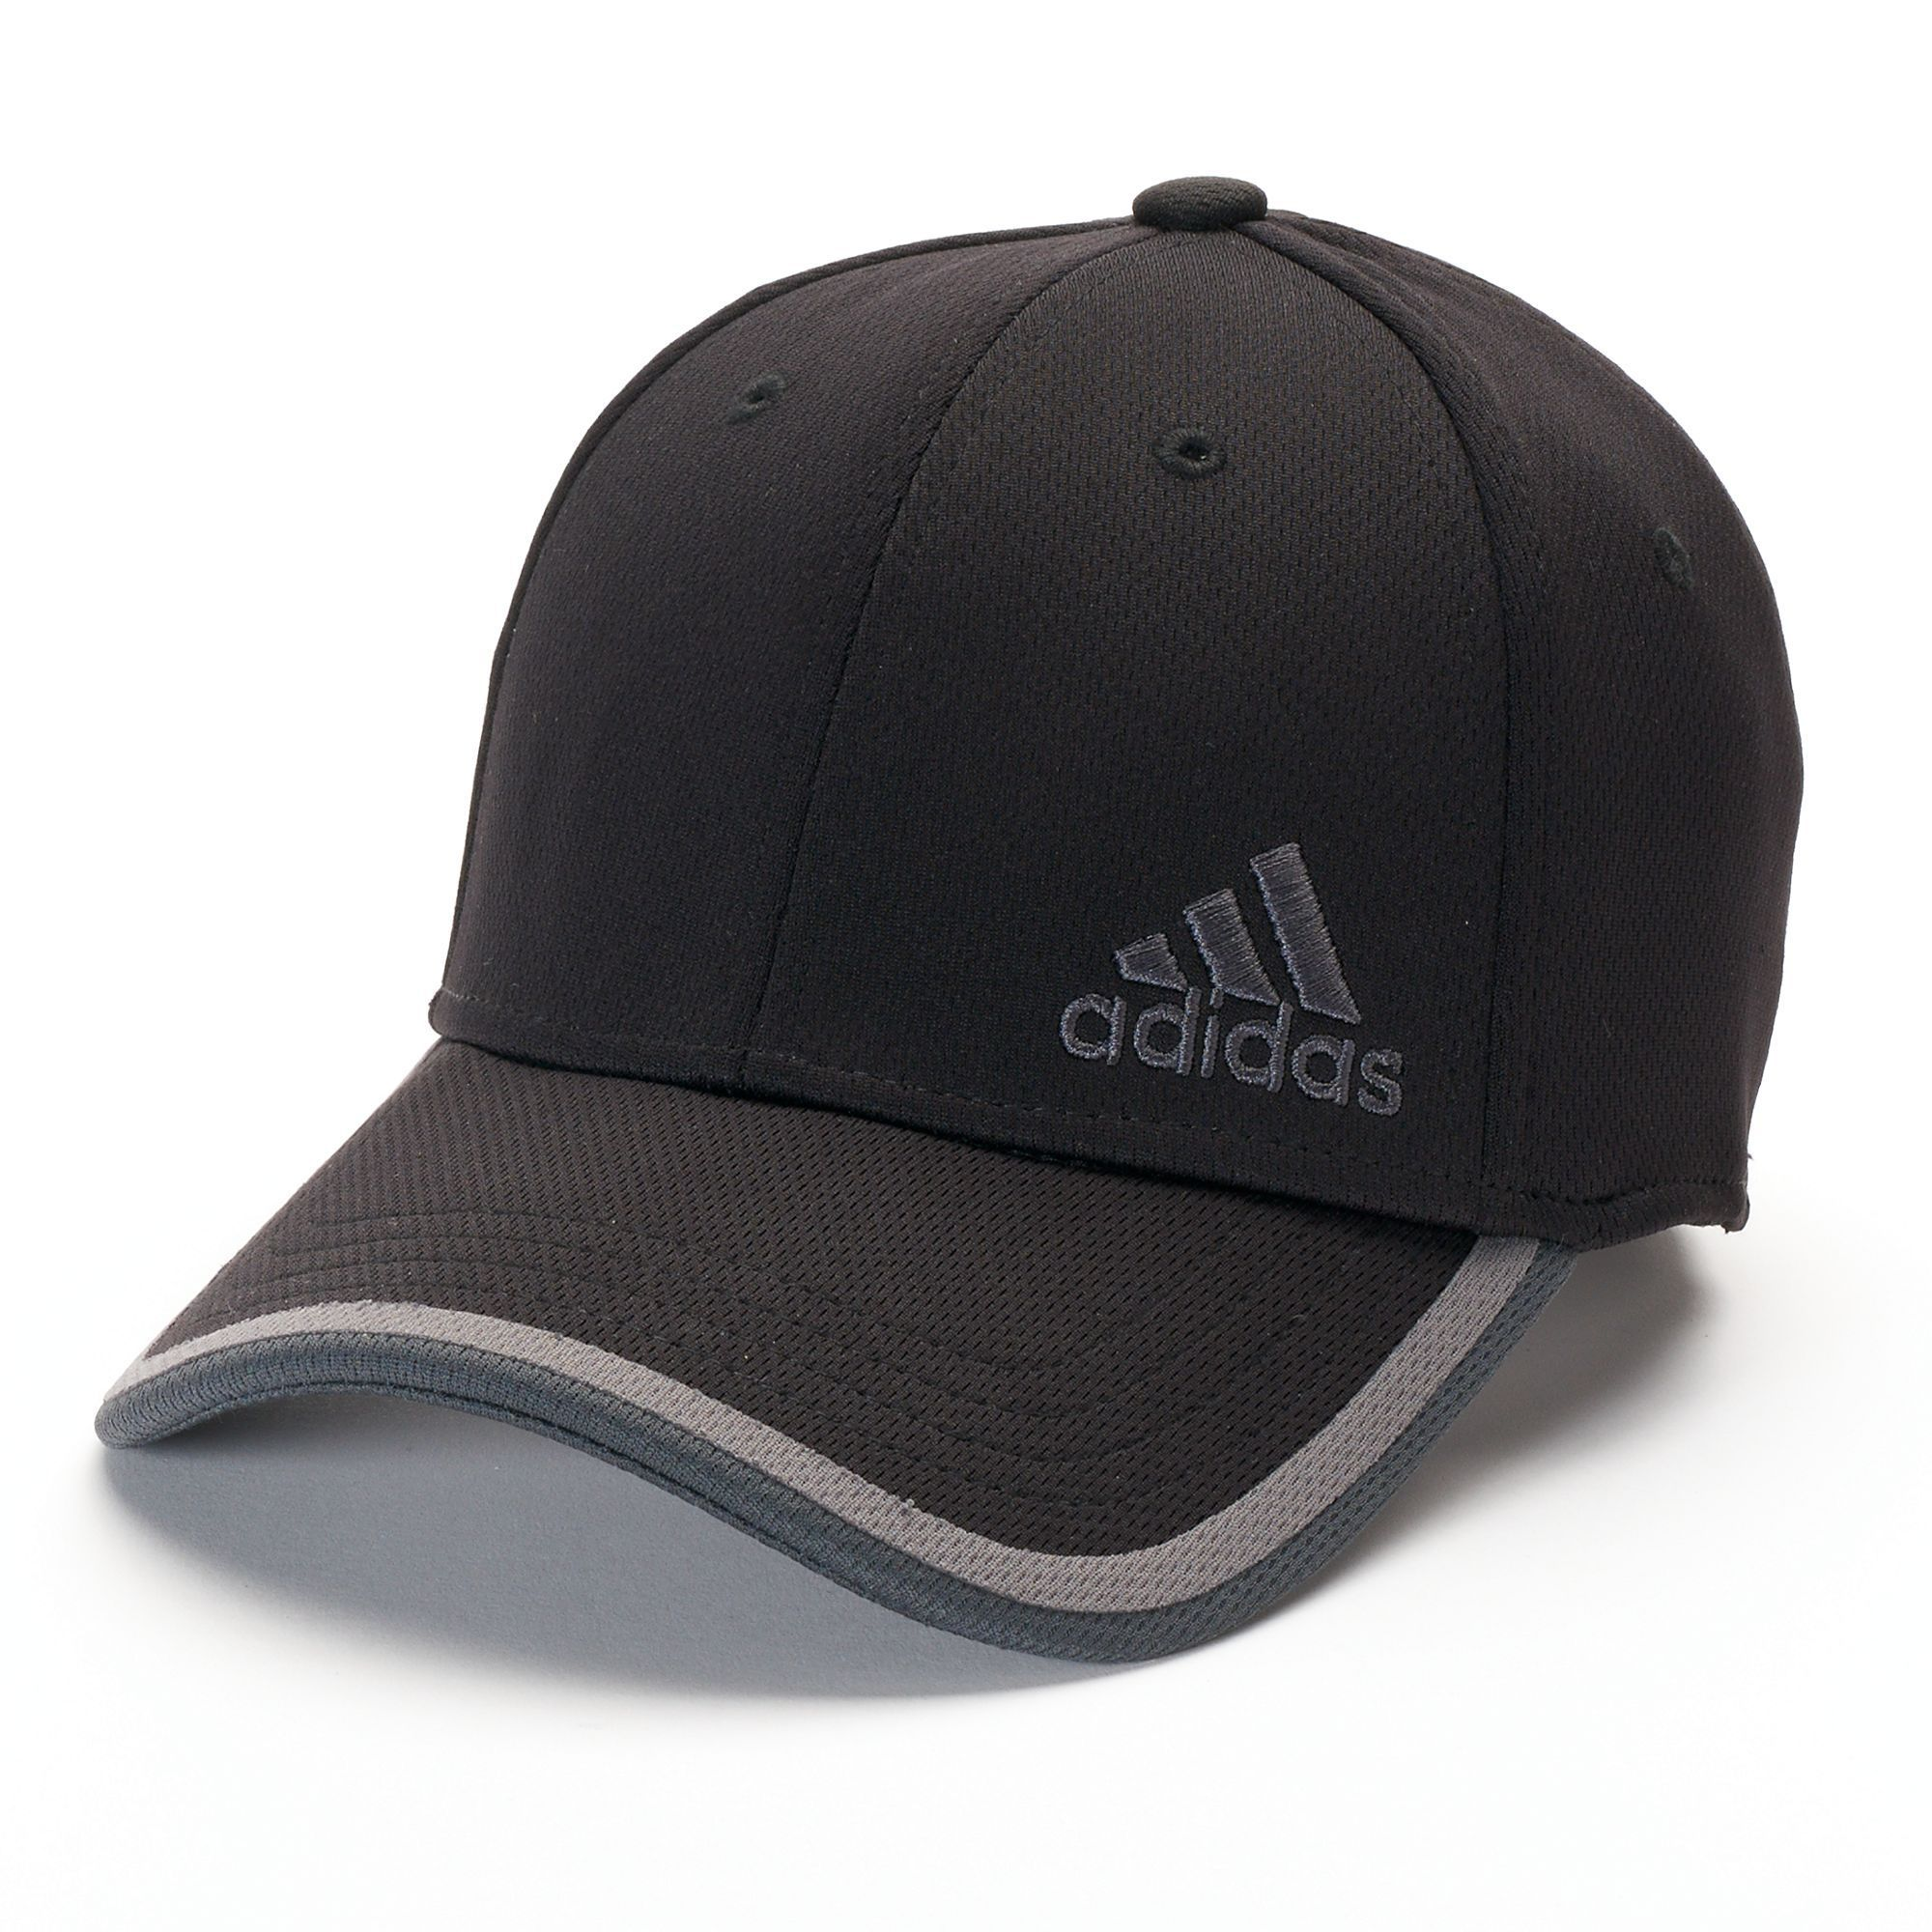 Adidas Fitted Baseball Cap Men Fitted Baseball Caps Baseball Caps Mens Adidas Cap